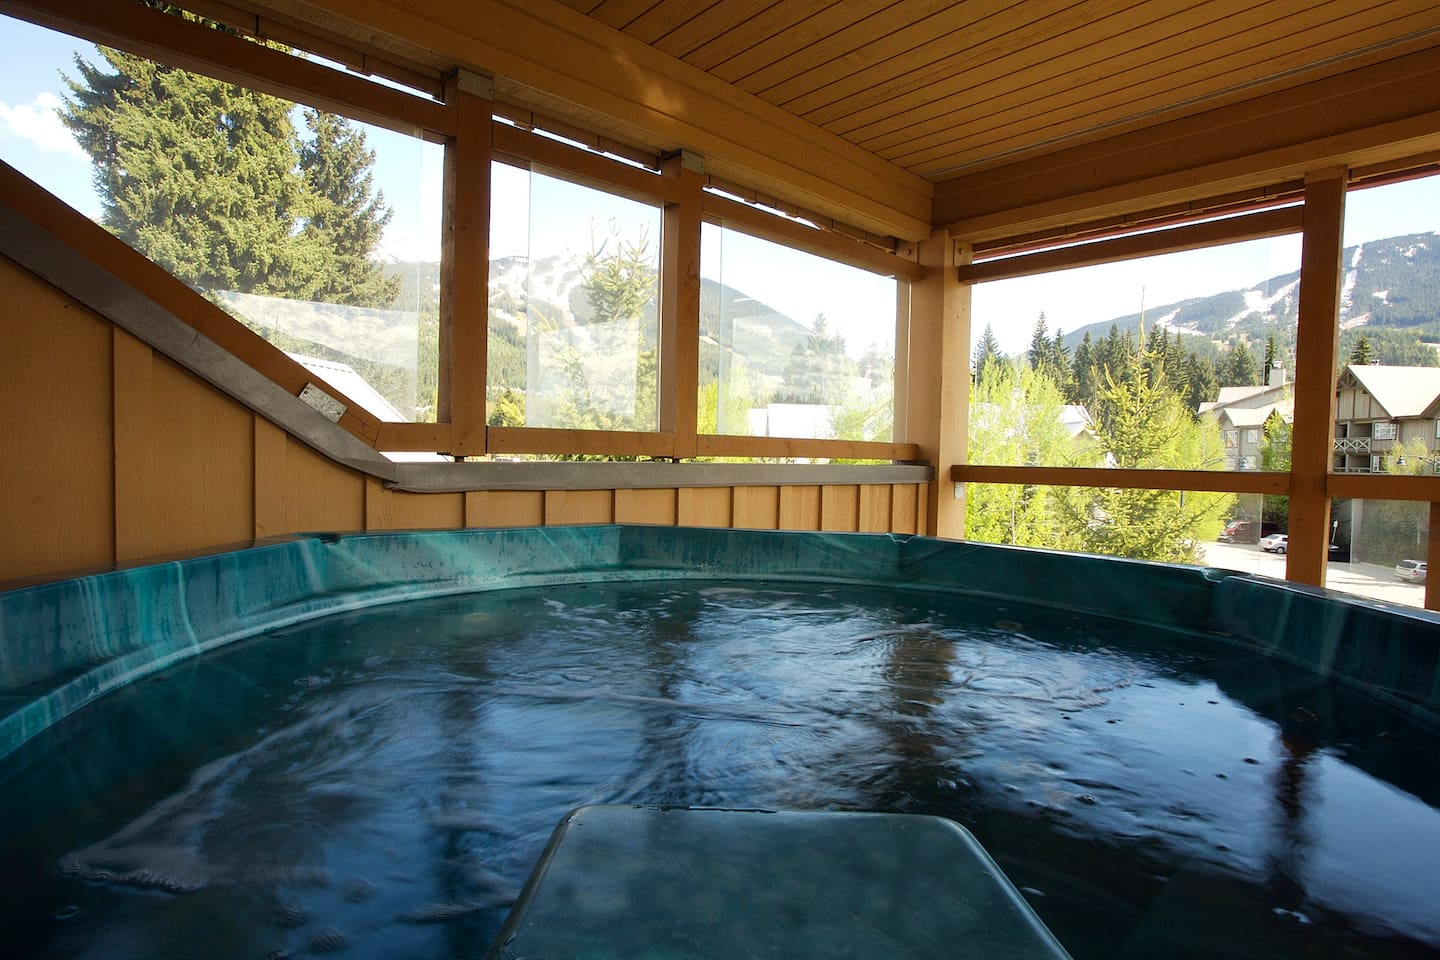 Exclusive views of both Whistler and Blackcomb Mtns. from private Hot Tub off master bedroom